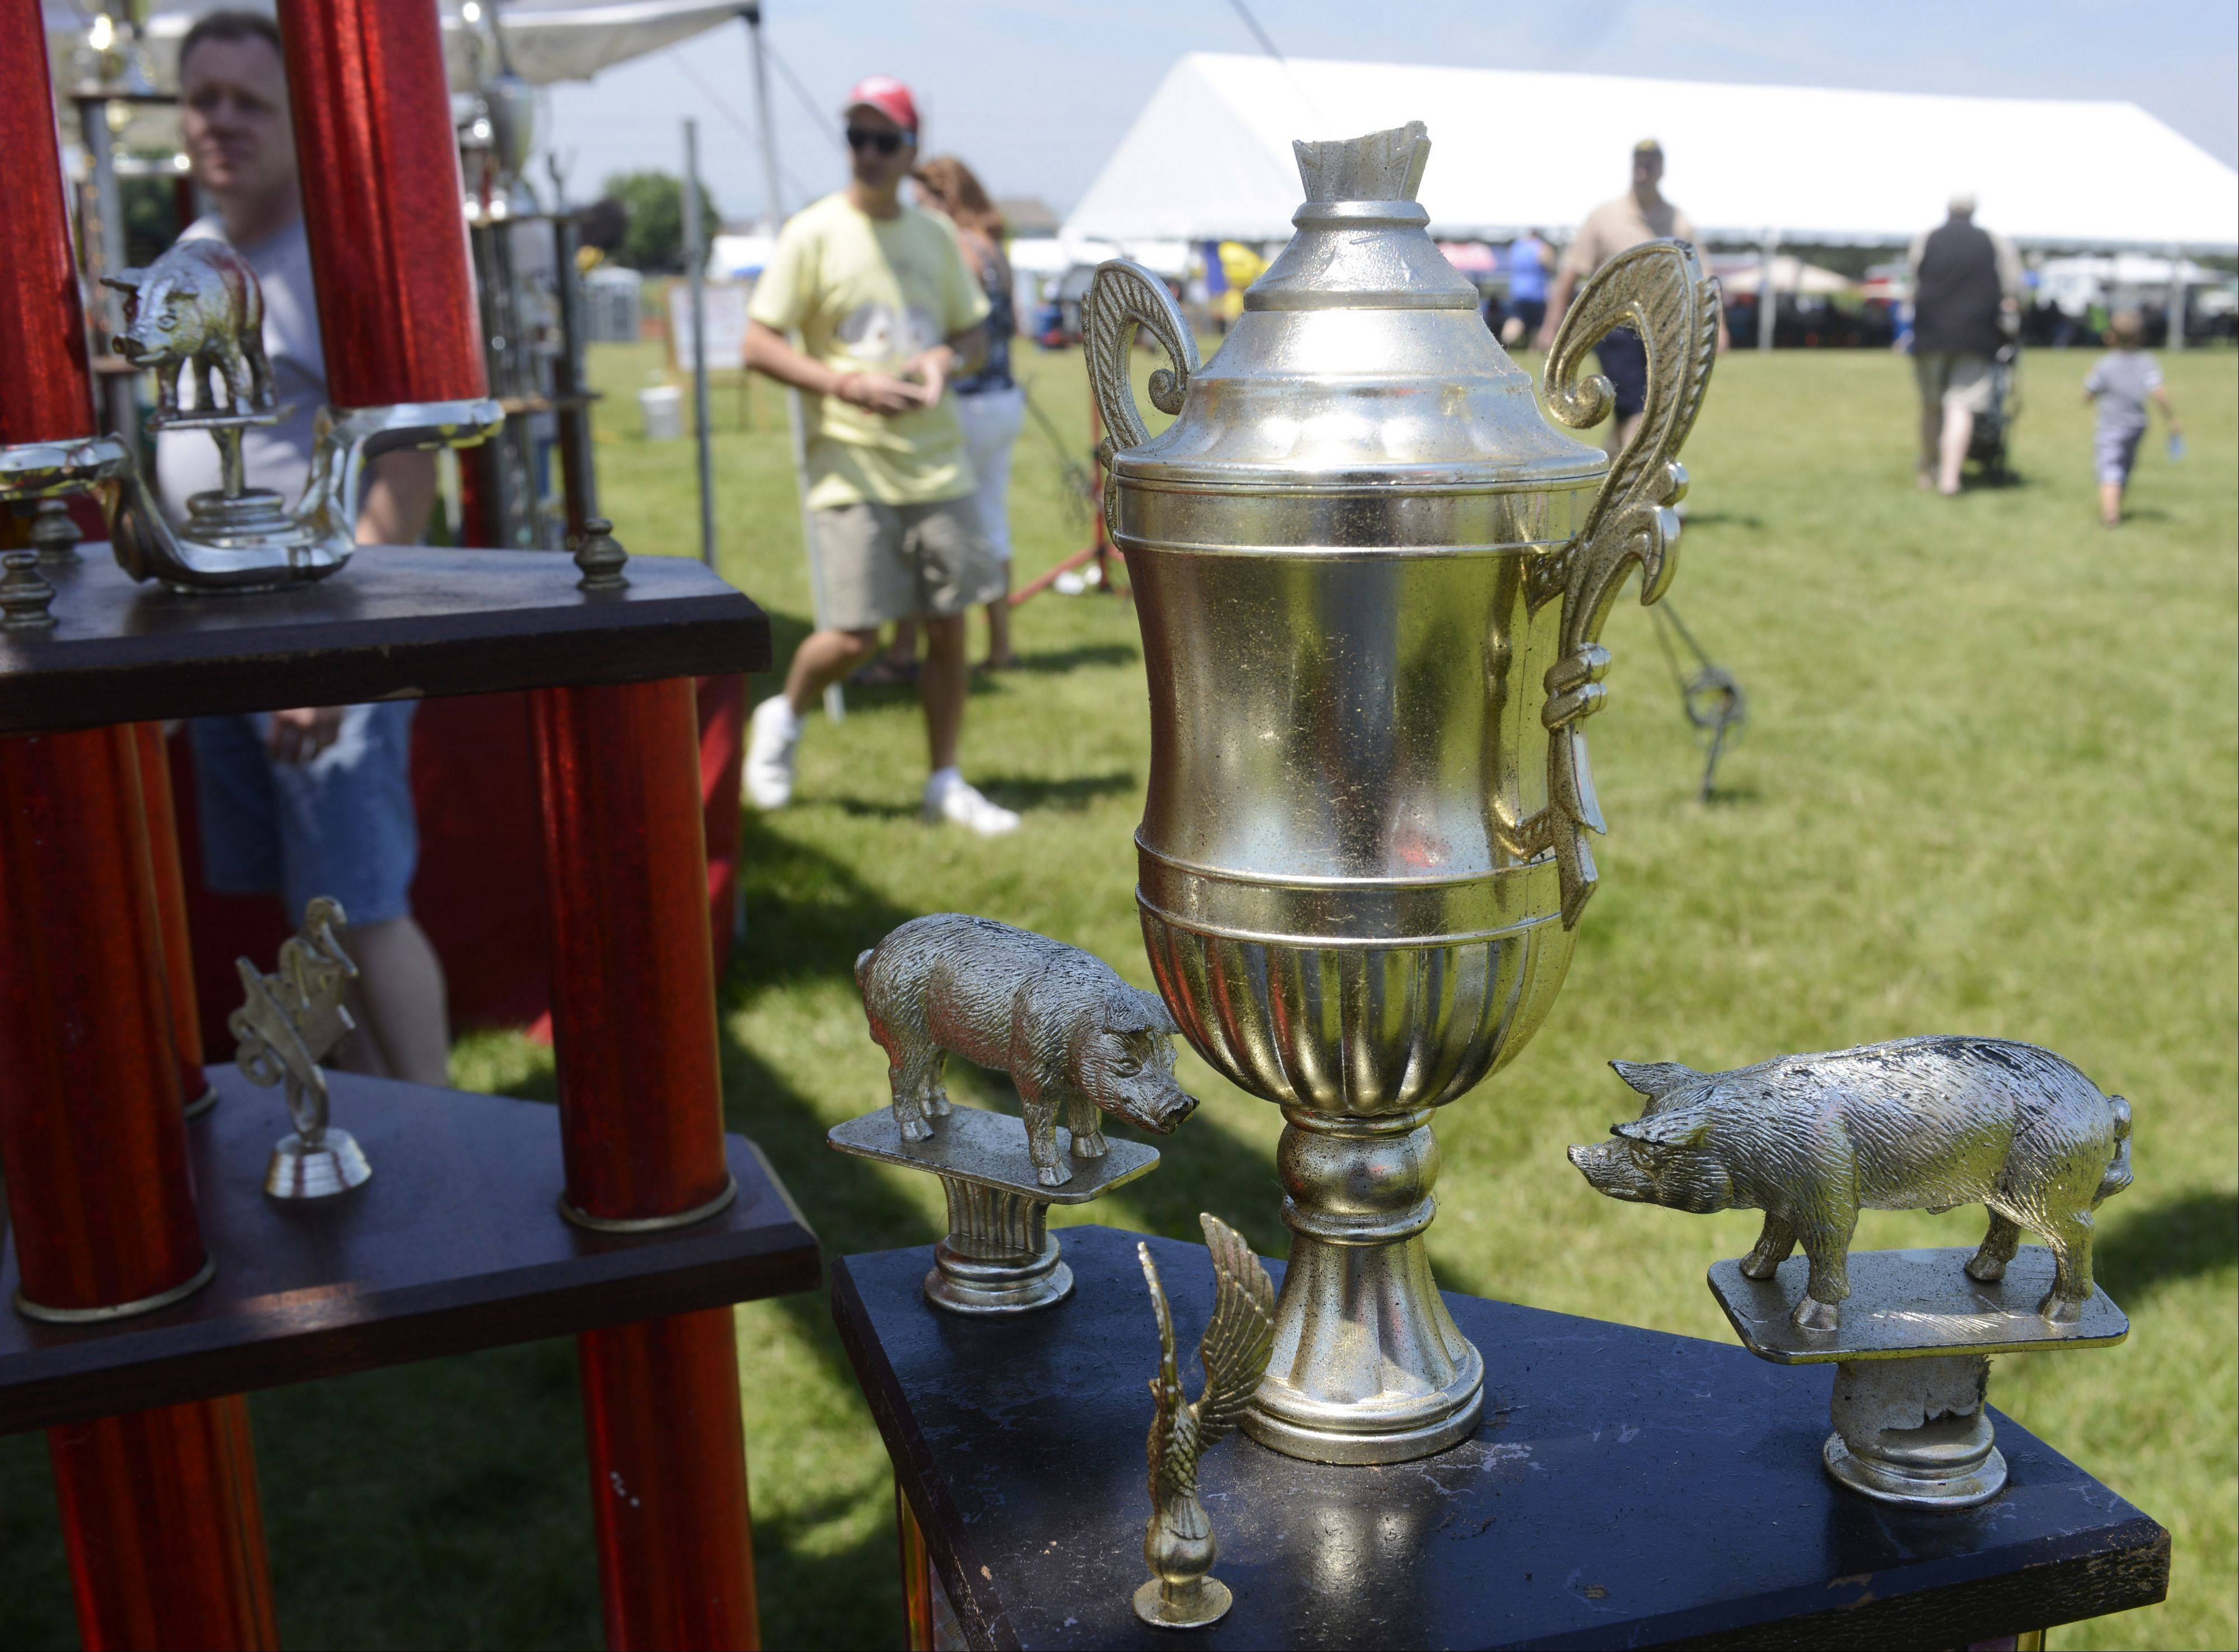 Trophies won at nationwide ribs competitions decorate the areas in front of vendor's tents.